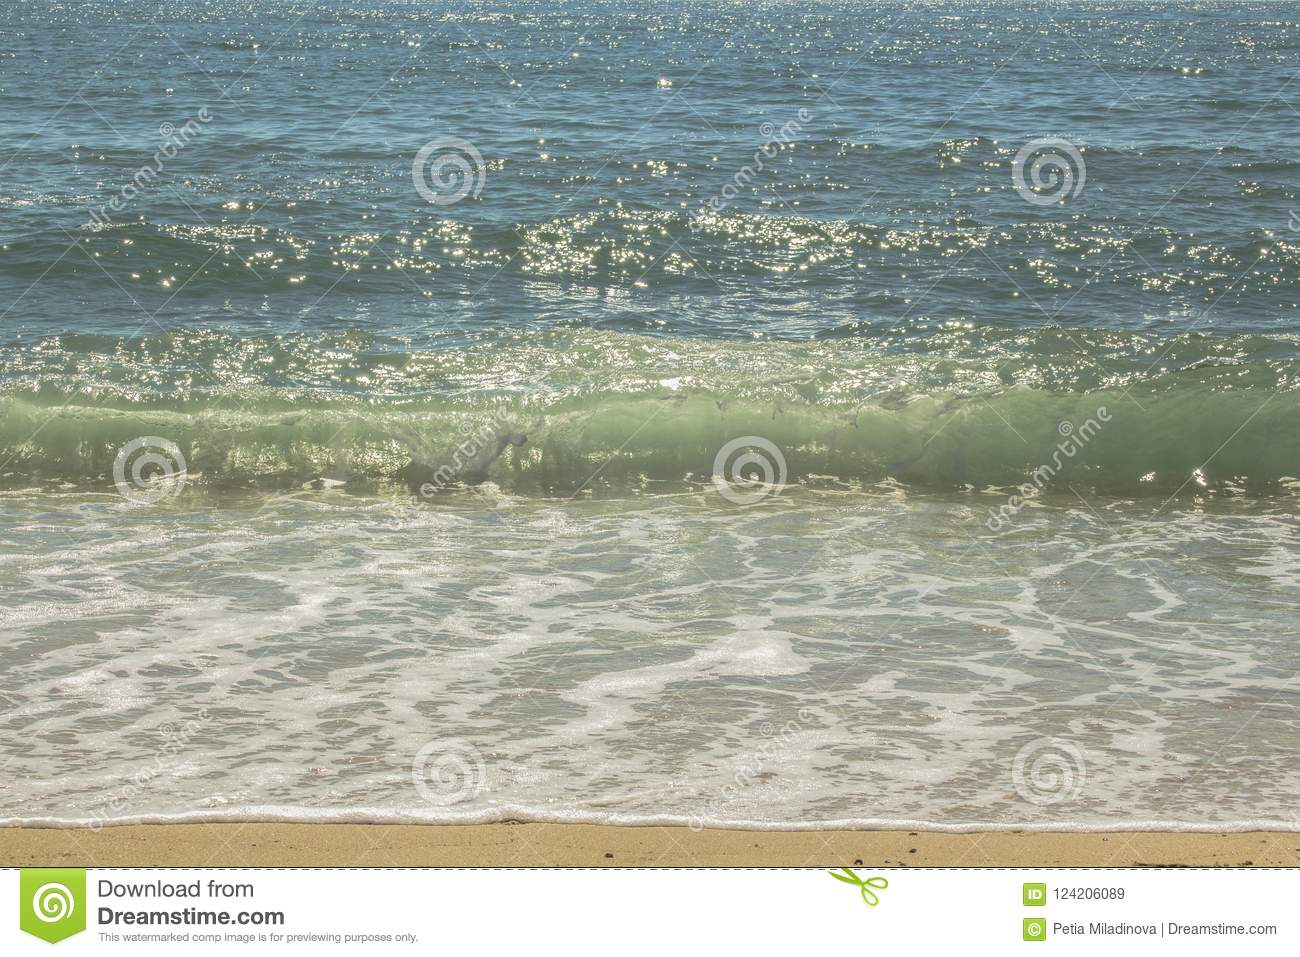 Summer mood. A glimpse of the beautiful waves rolling down to the shore.